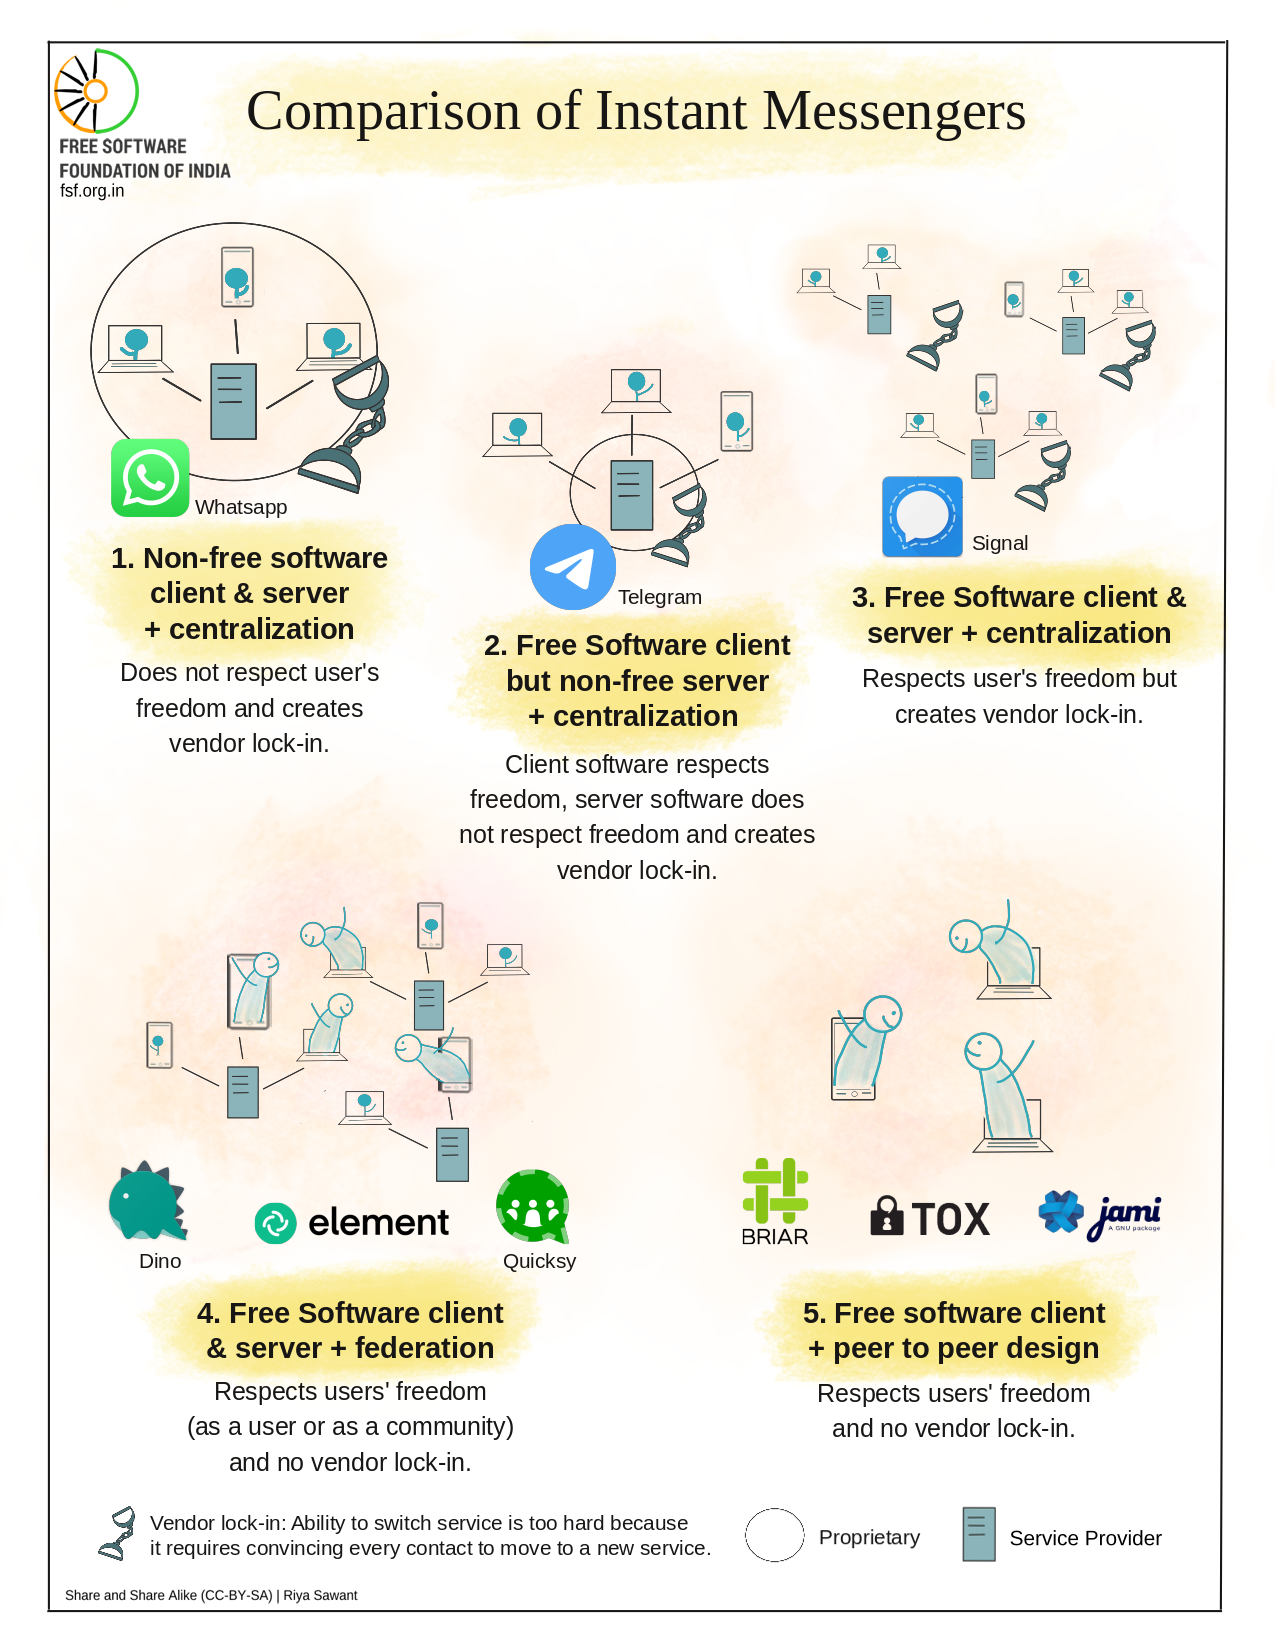 Comparison on Instant Messengers - Infographics by Riya Sawant for FSF India